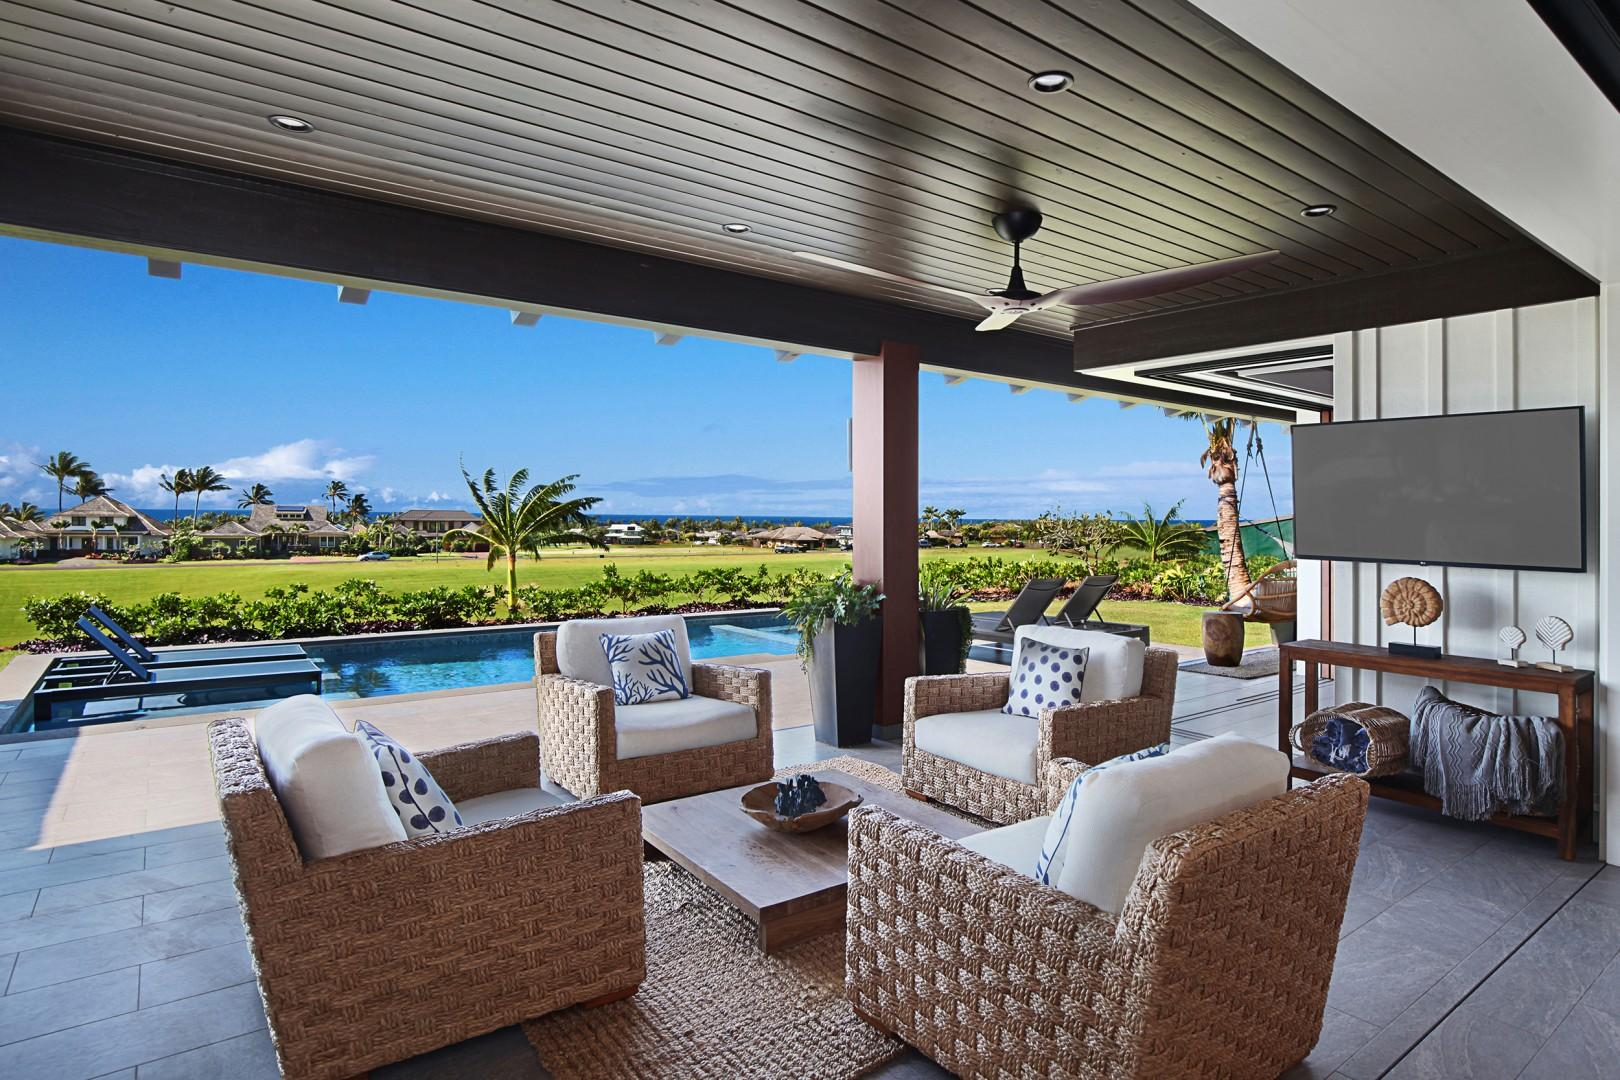 Outdoor living space with ocean views